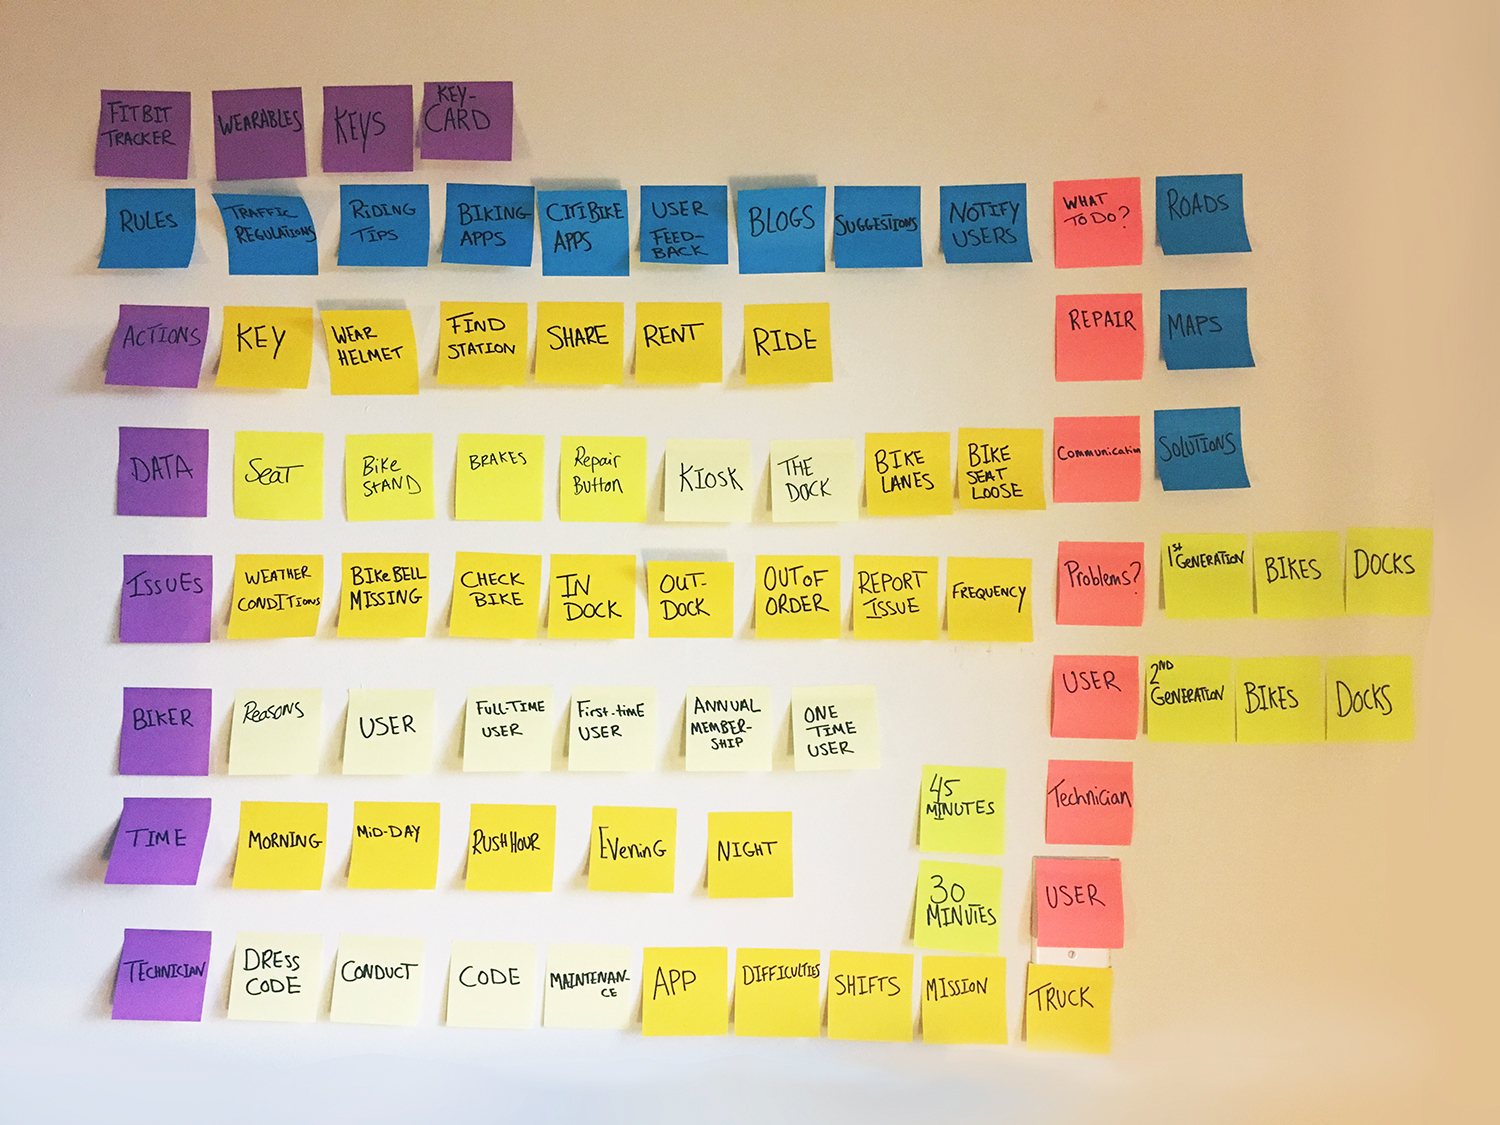 Our wall of color coded post-it notes with ideas and user points around Citi Bike.